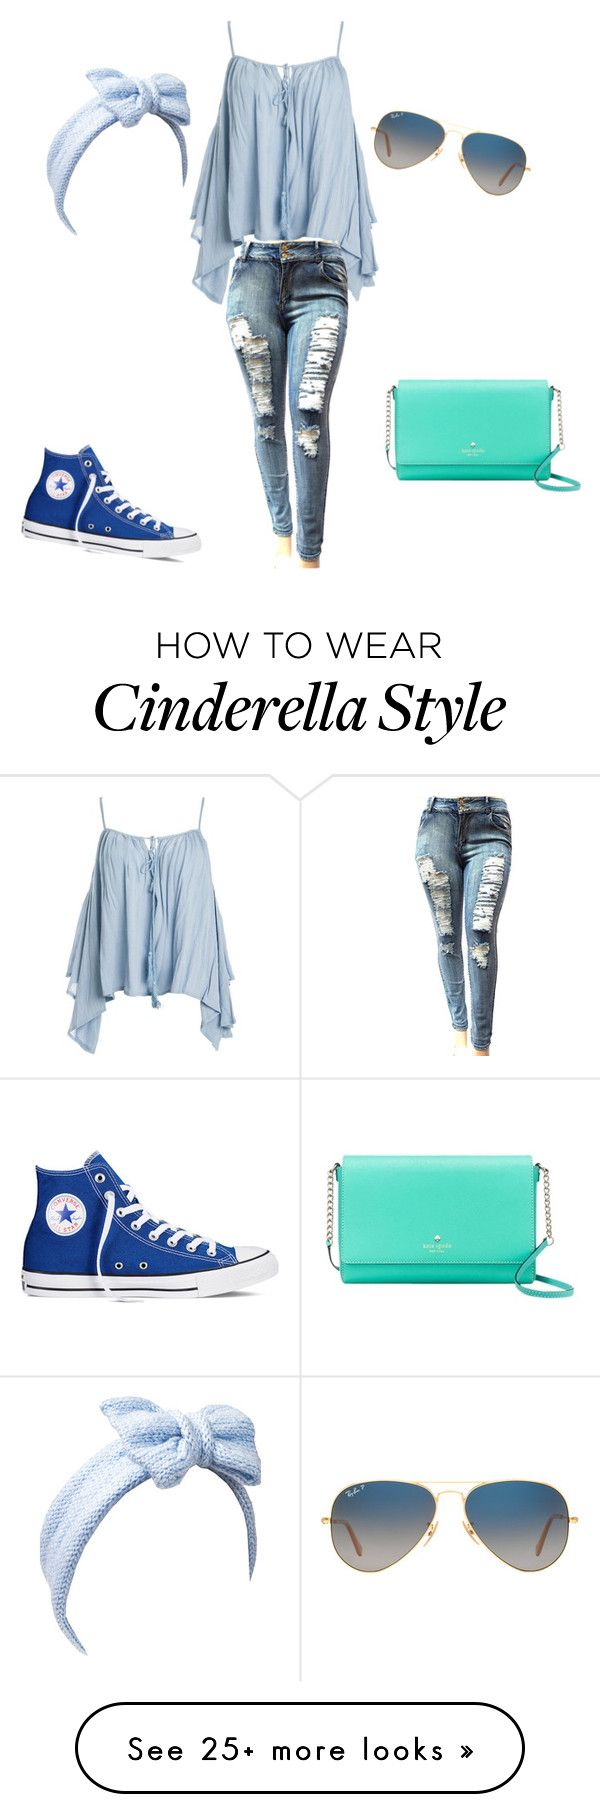 """The 2016 Cinderella"" by catch22mitchell on Polyvore featuring Converse, Sans Souci, Ray-Ban, Kate Spade and Beauxoxo"